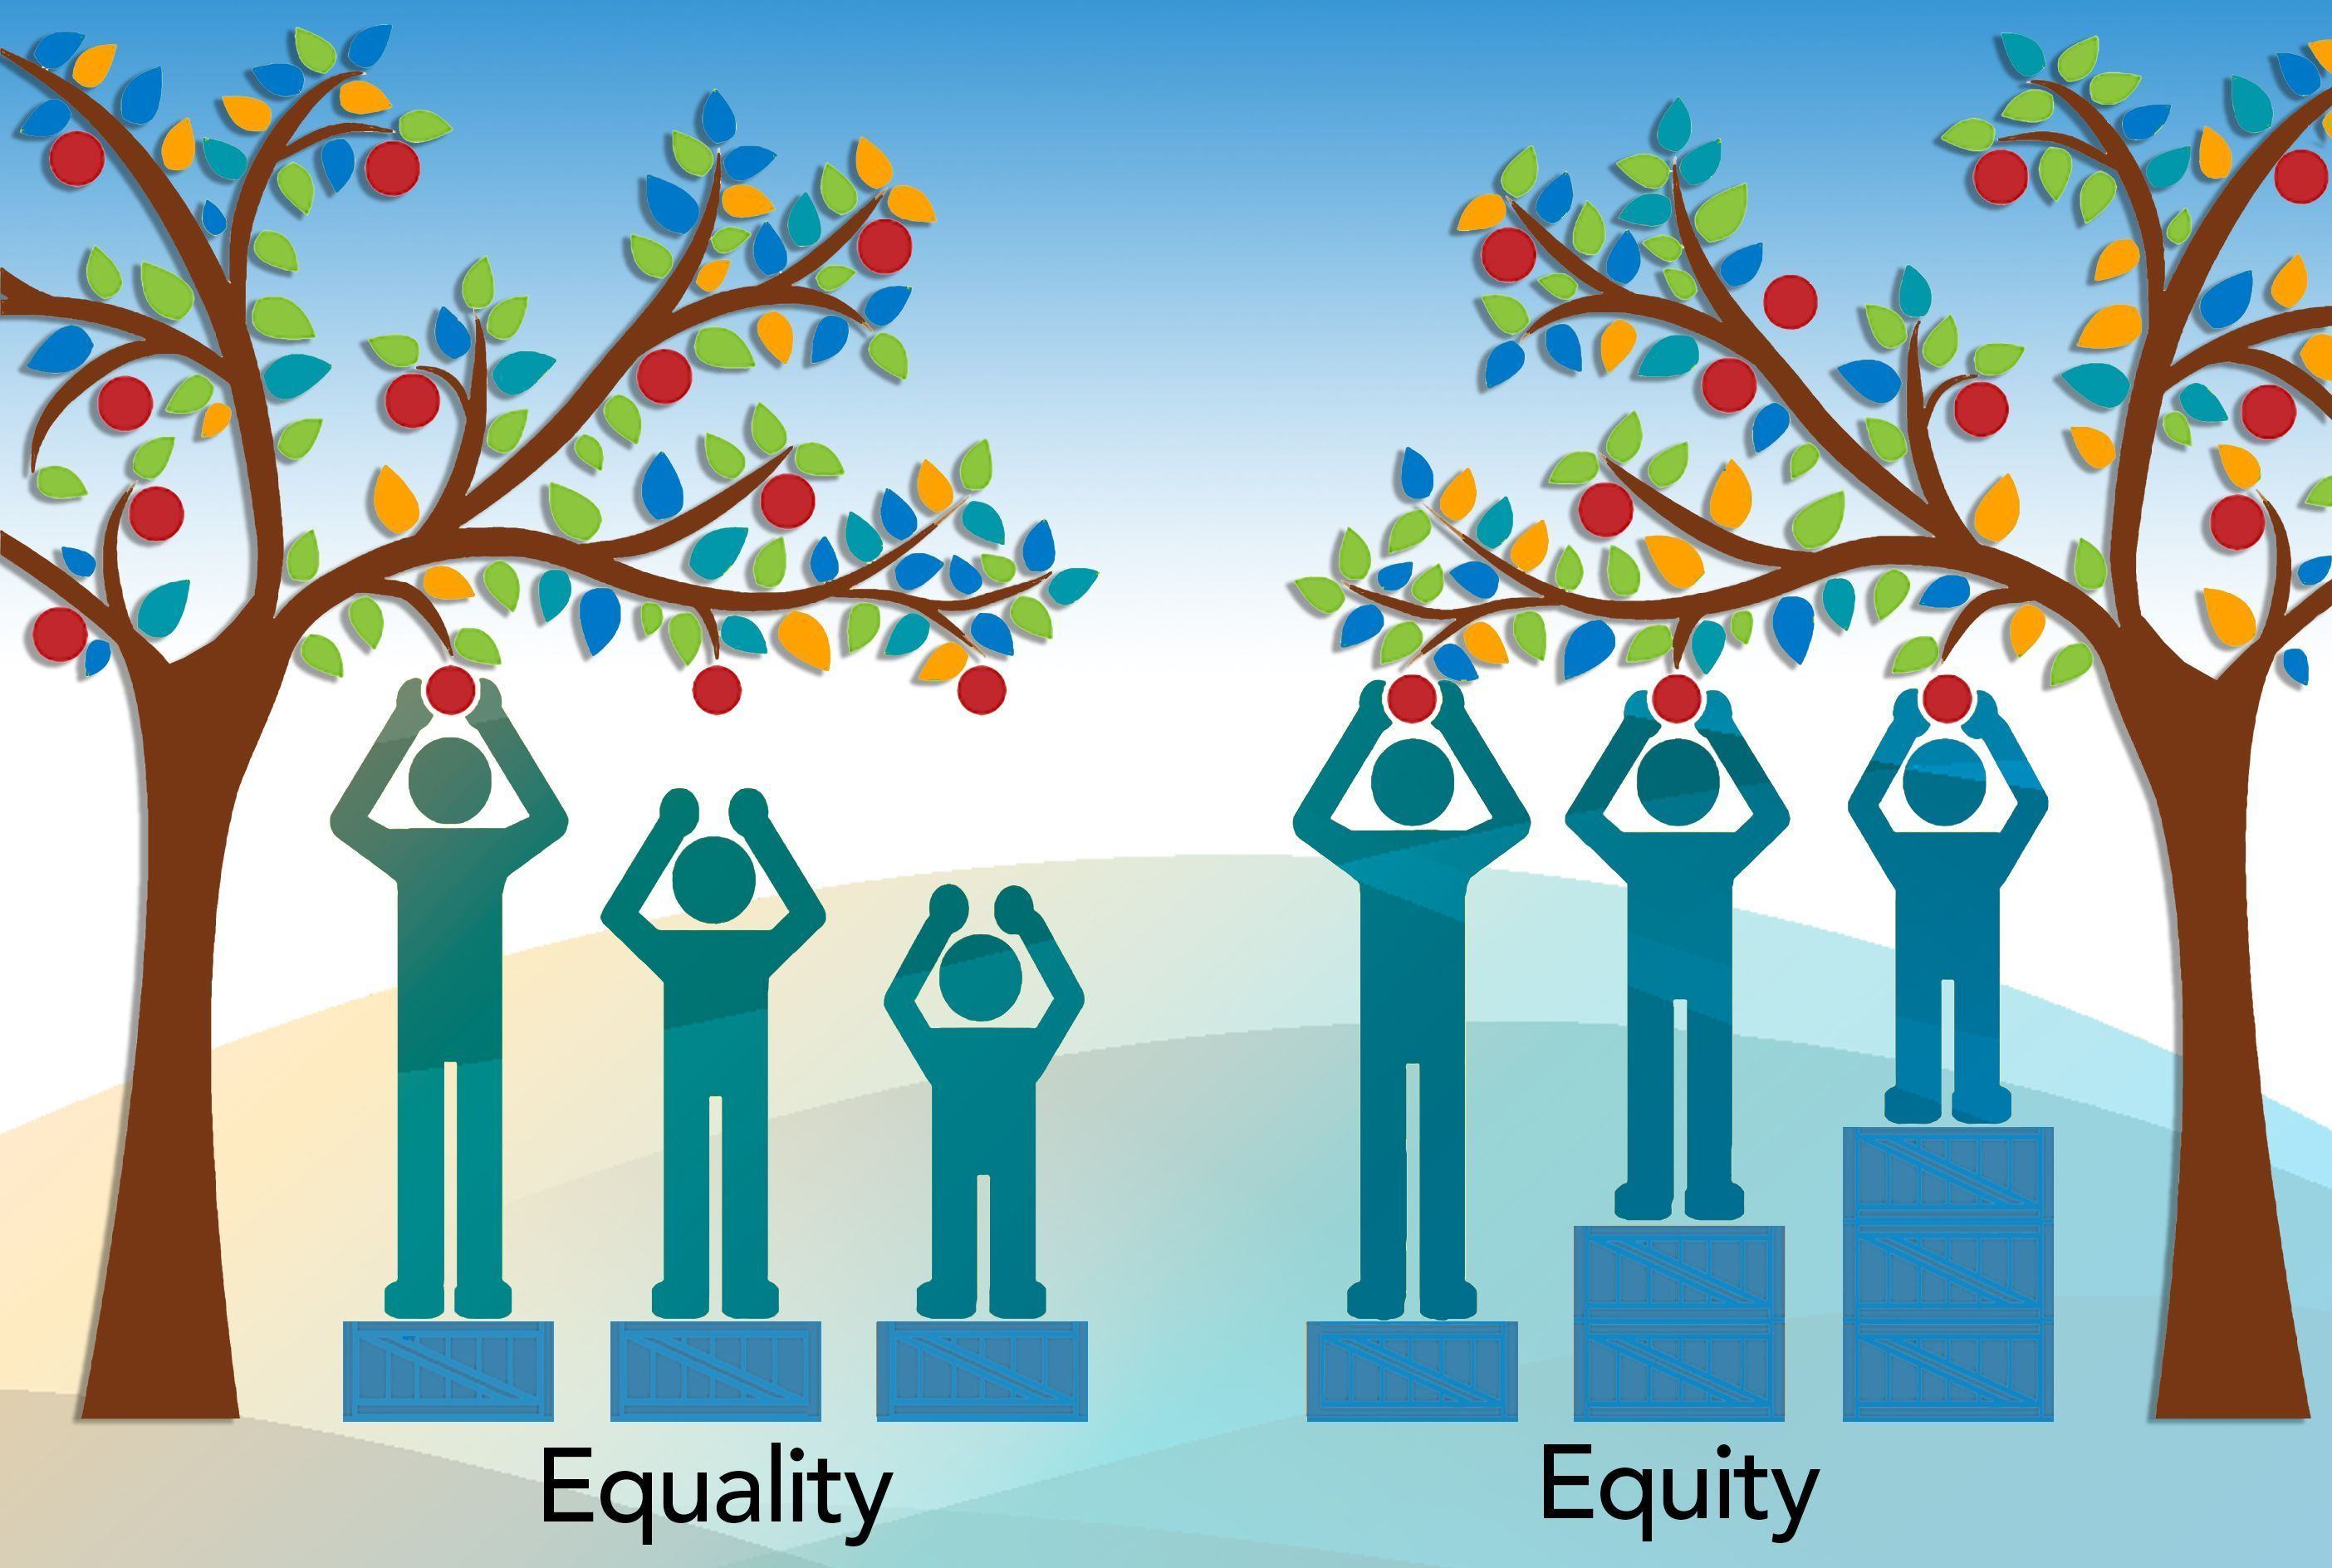 Equity vs equality public health visual aid in 2020